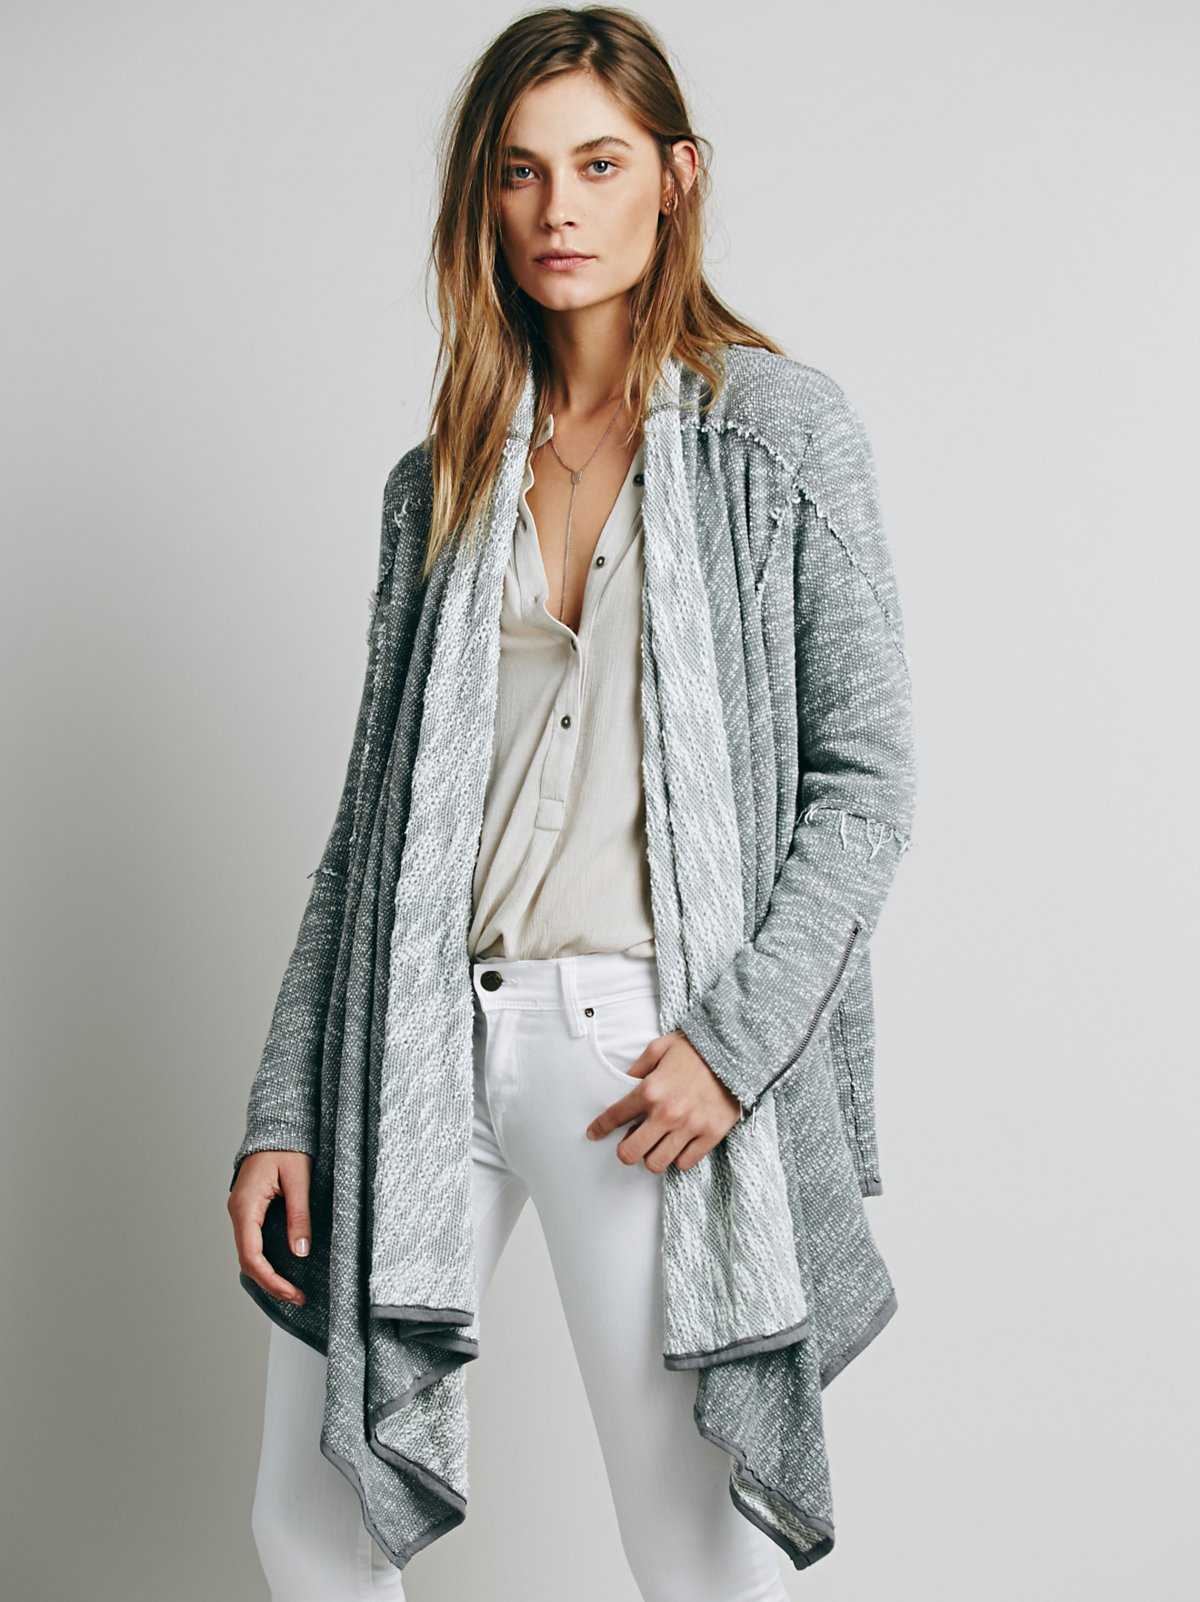 In The Loop Cardi